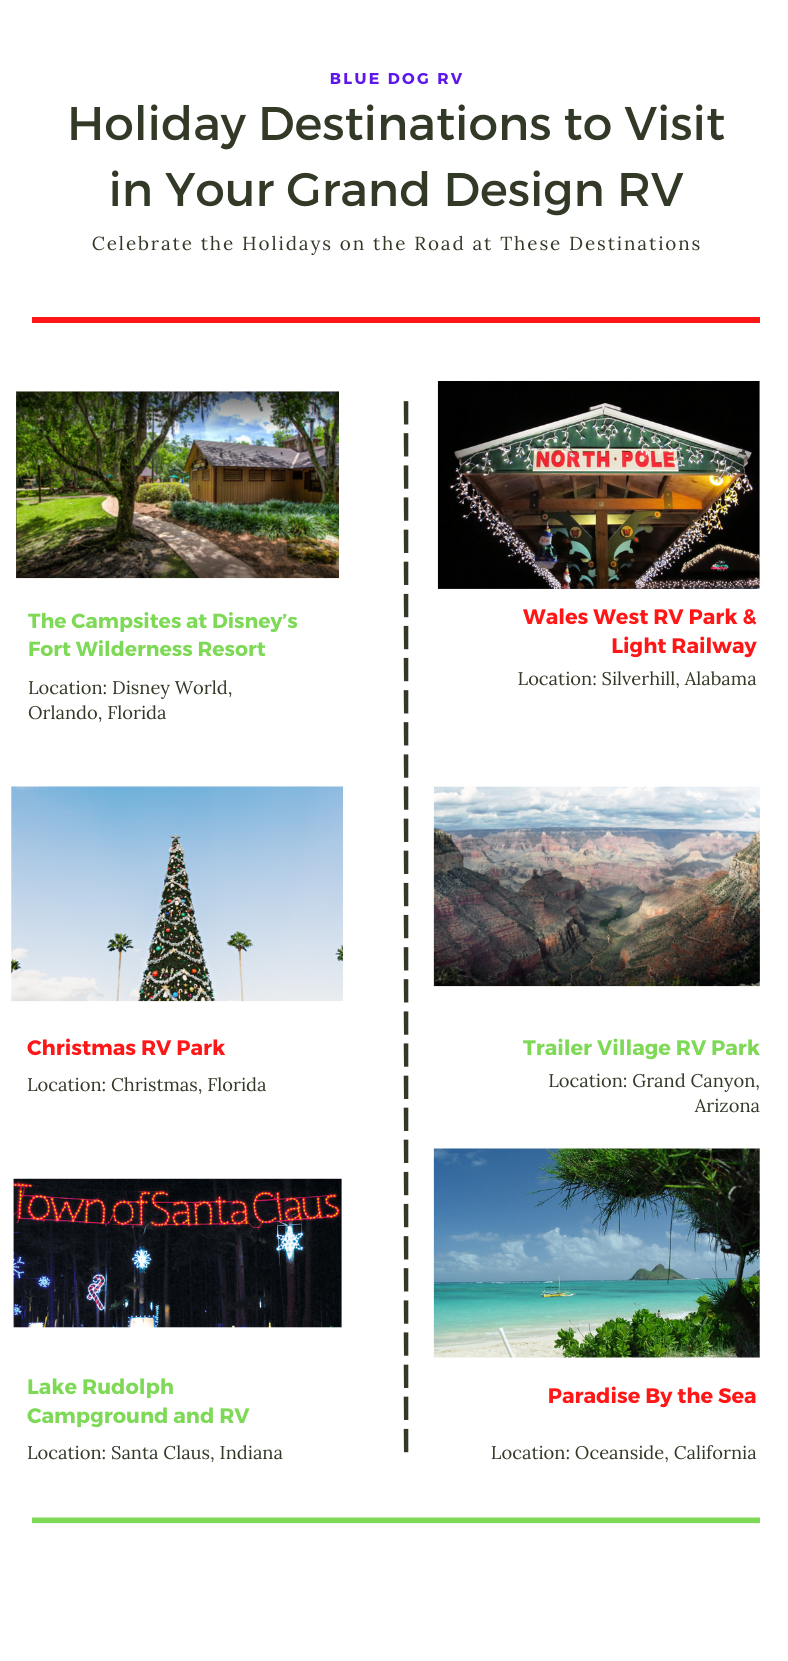 Celebrate the Holidays on the Road at These Destinations